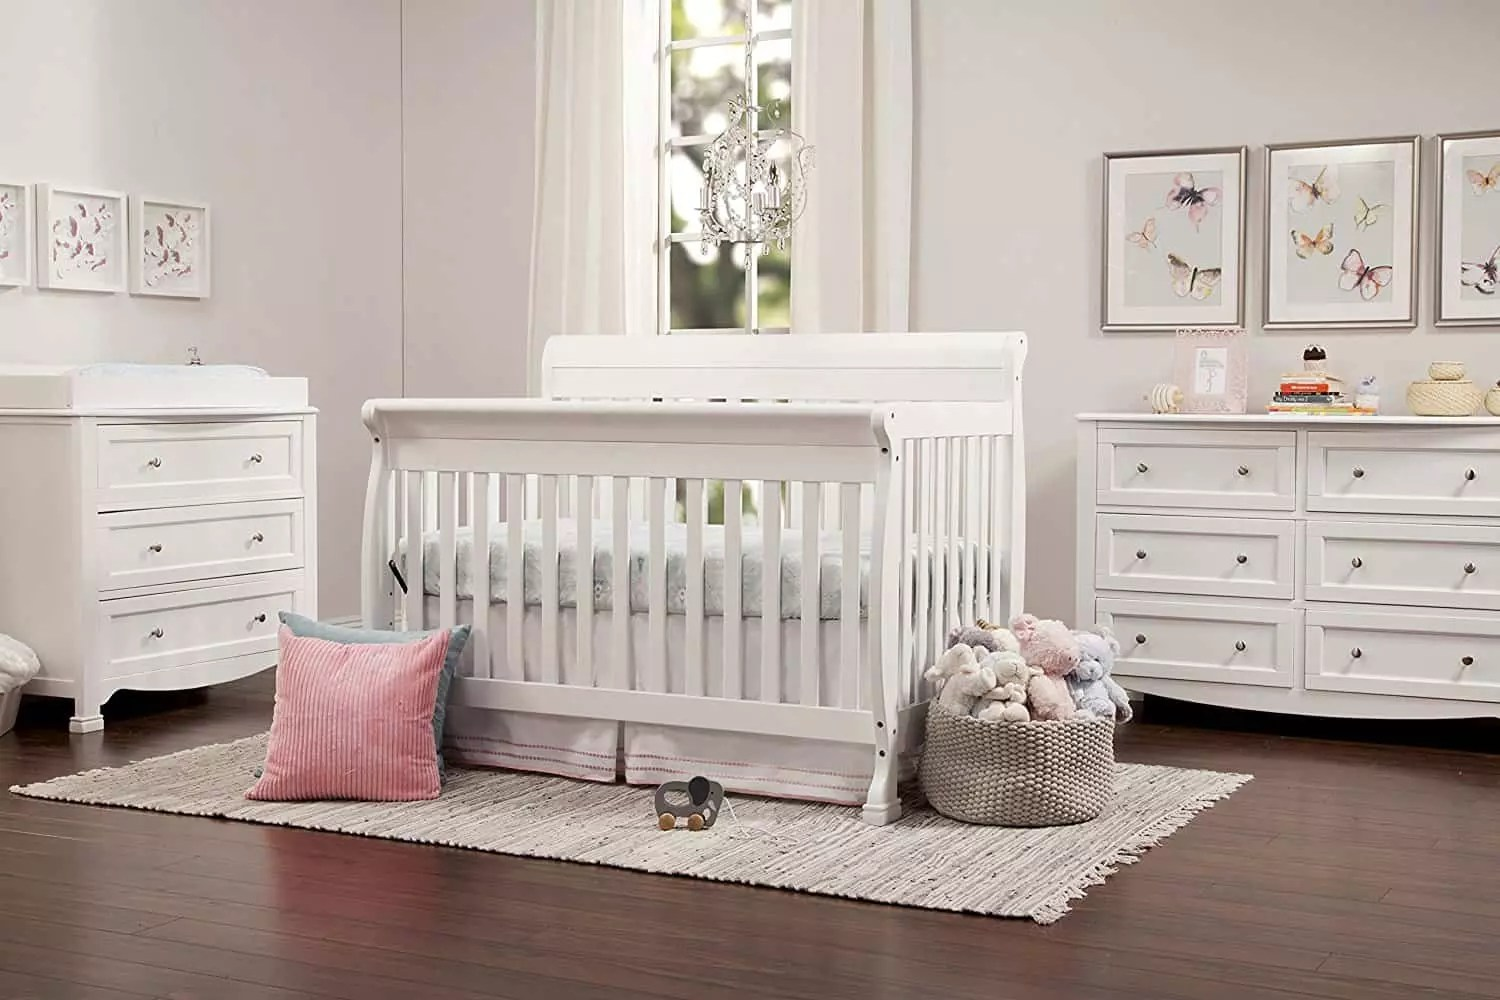 Baby Cot Sets Australia Best Baby Crib Y Baby Bargains